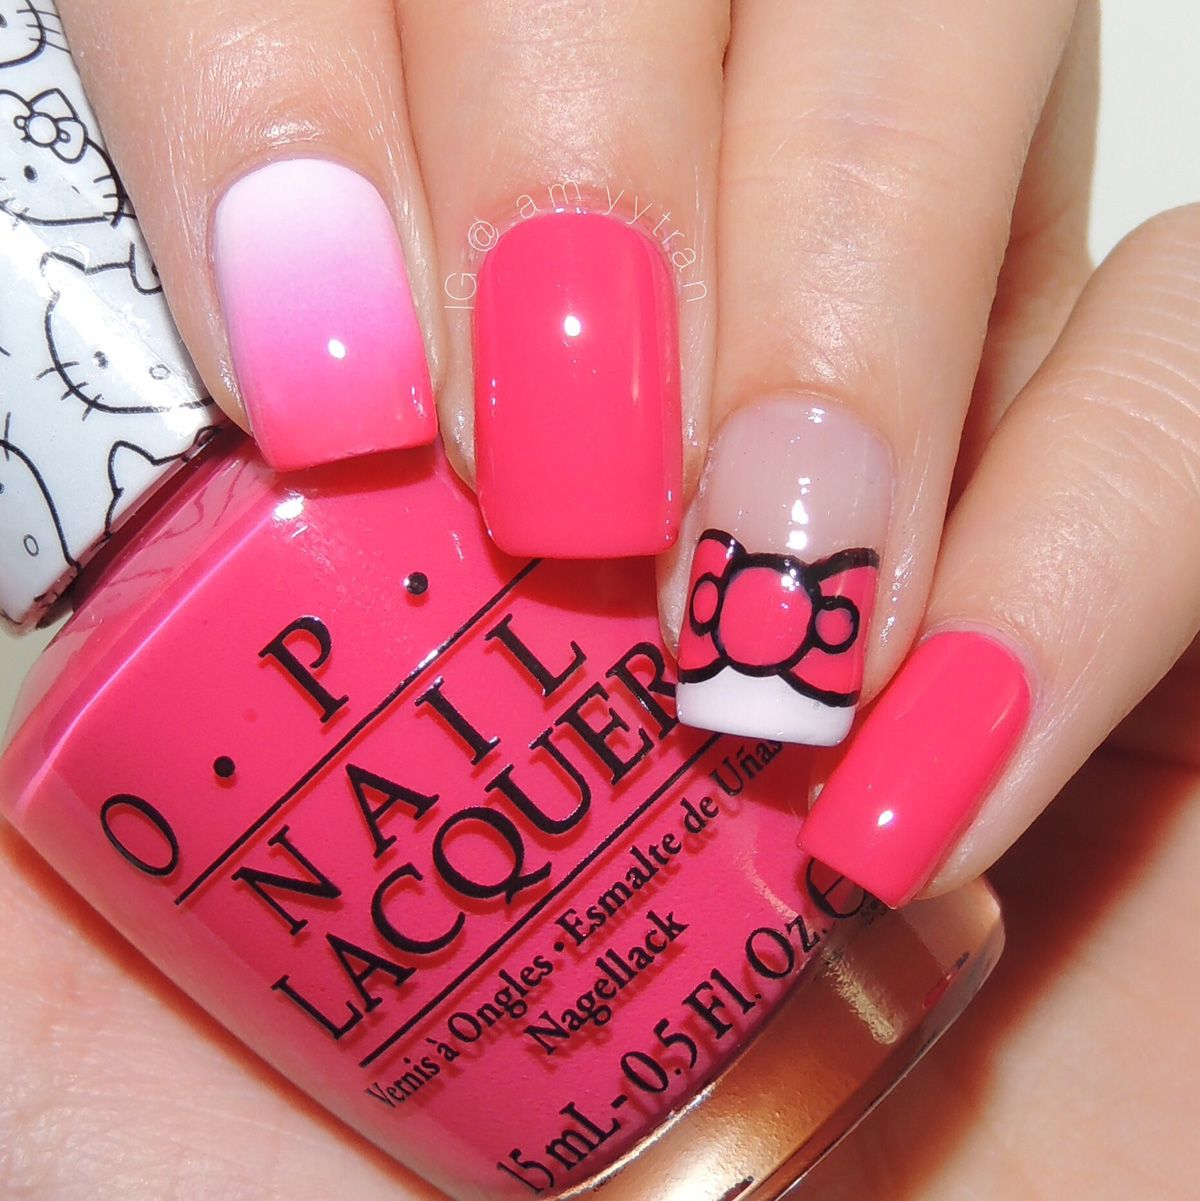 Pin by Nail It! Magazine on Pink Nails | Pinterest | Gradient nails ...